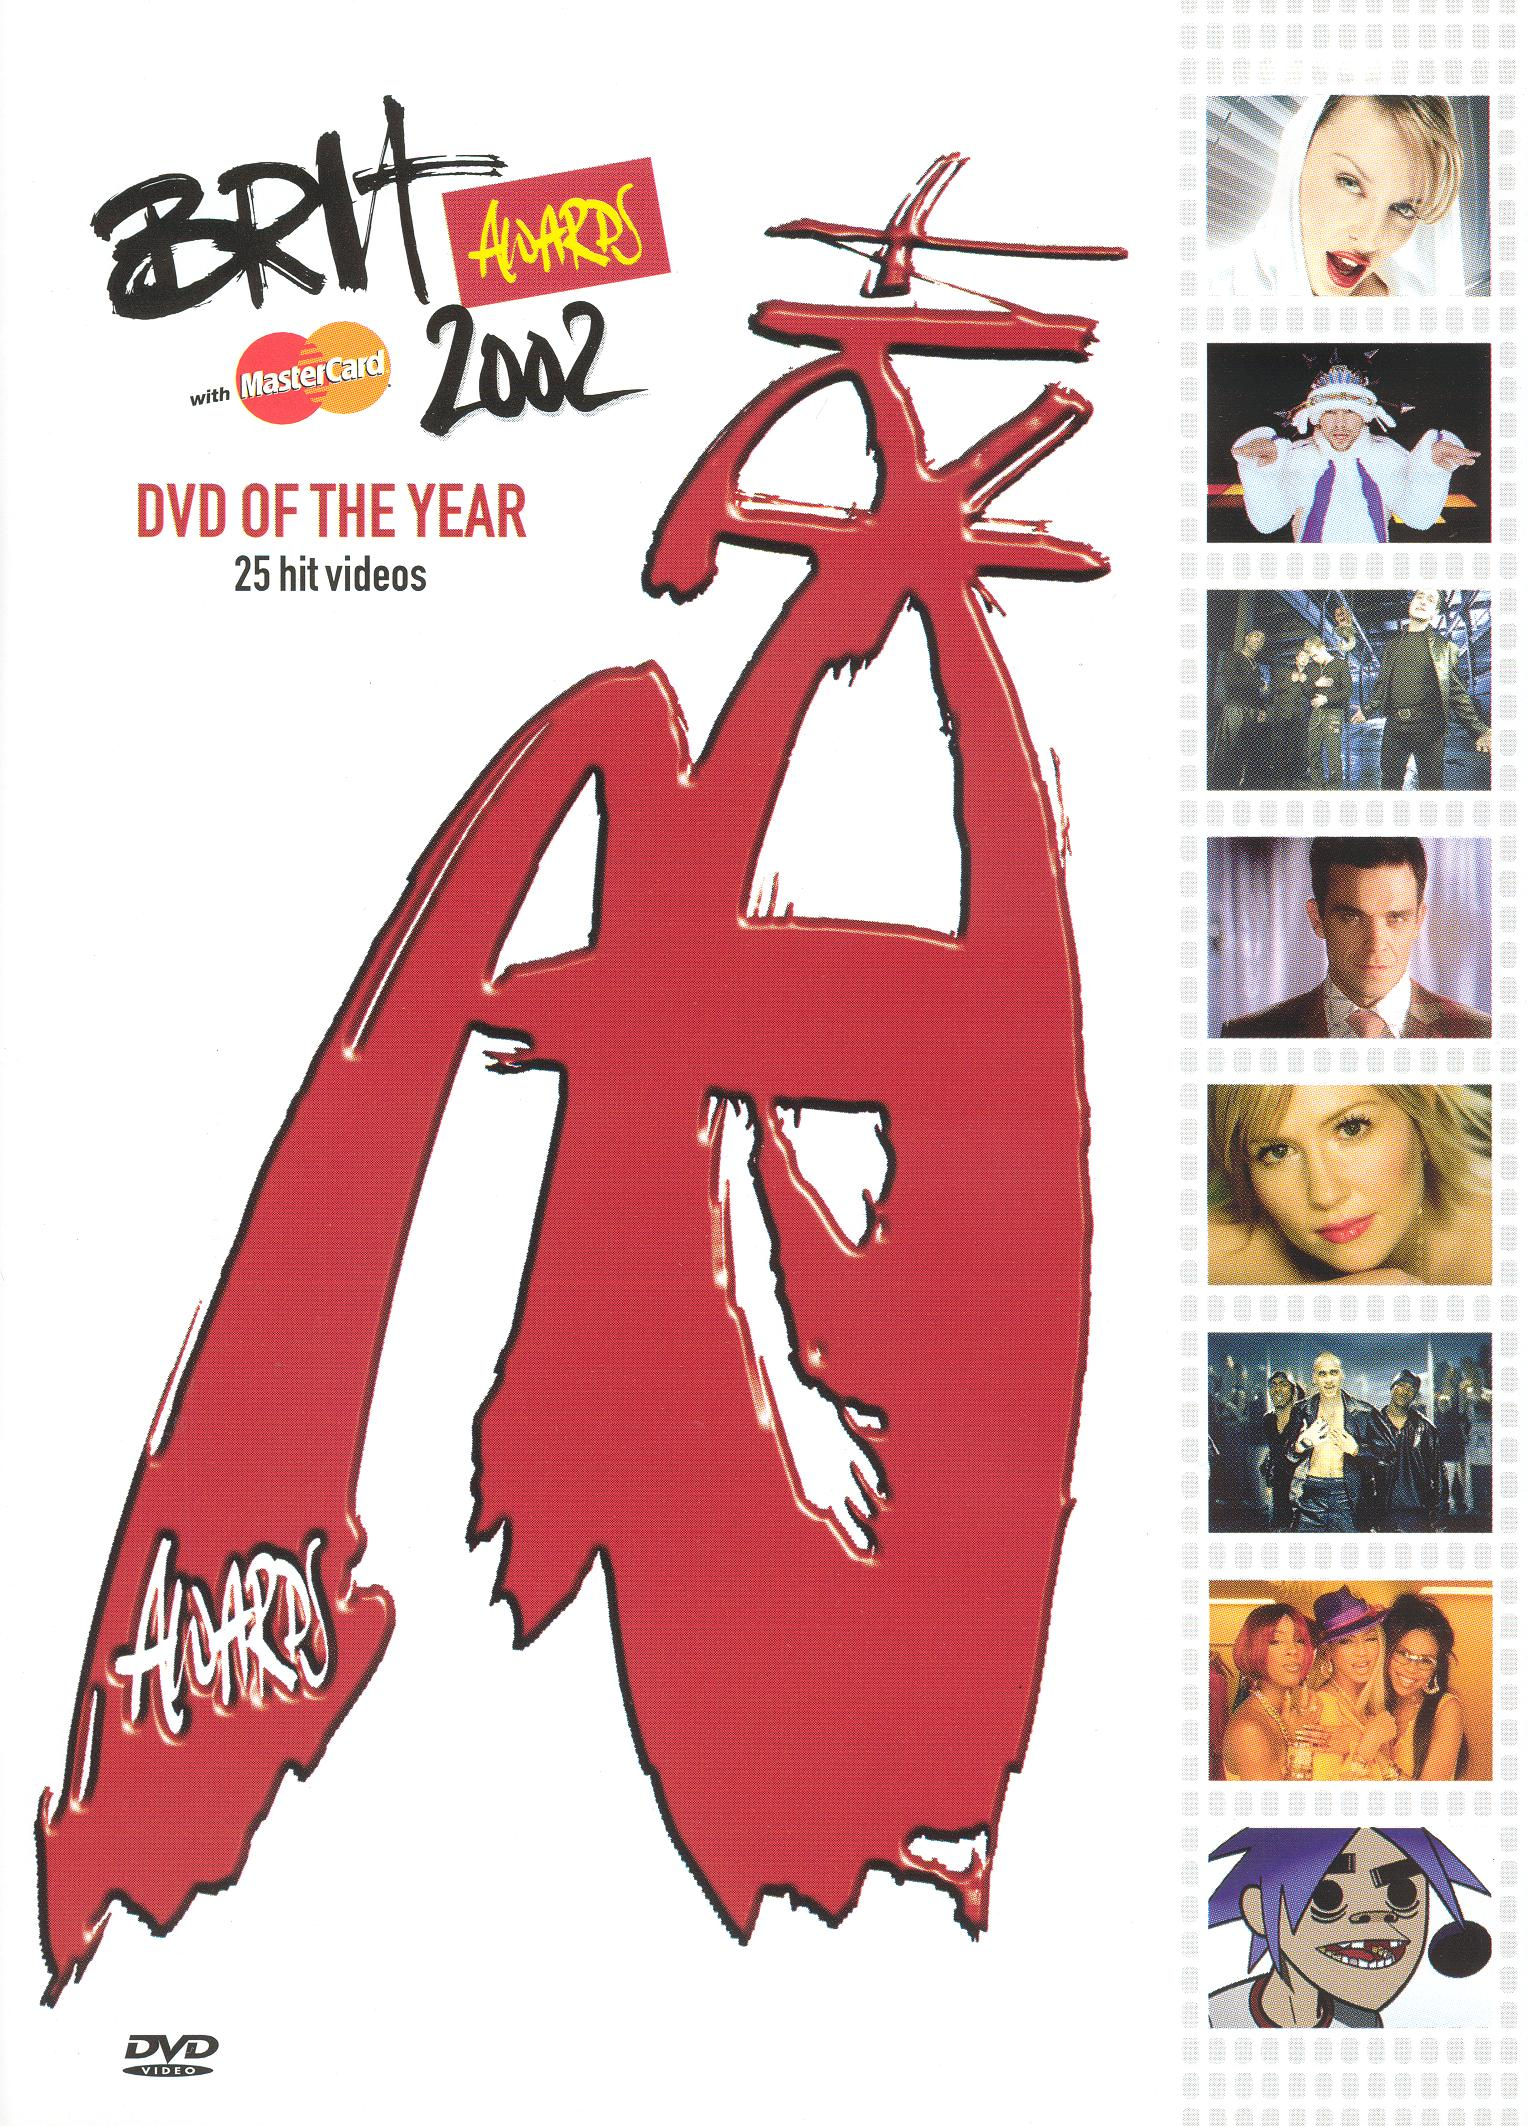 Brit Awards 2002: DVD of the Year